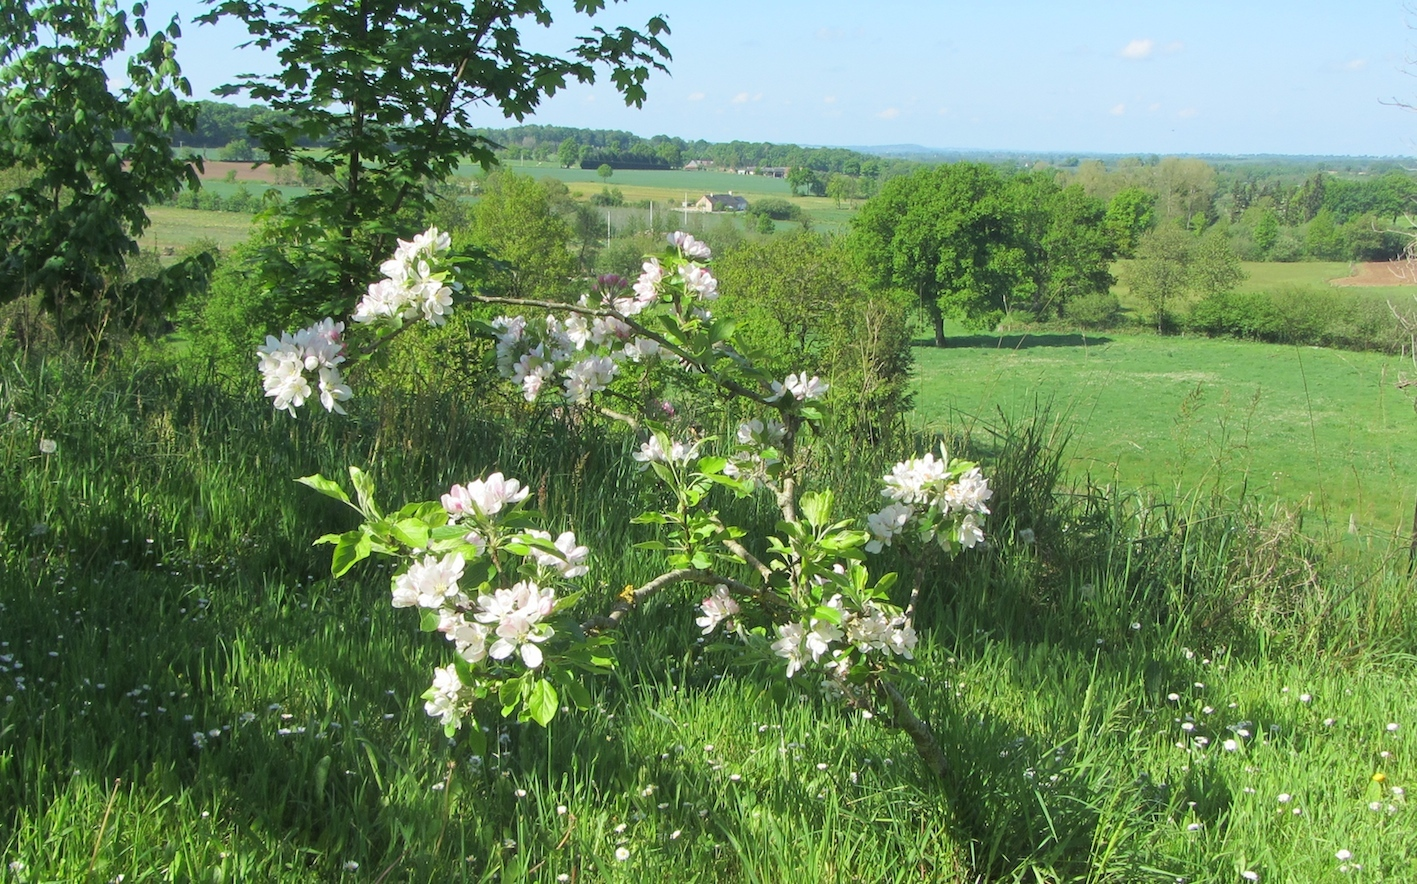 apple blossom time at Le Choisel, Normandy, France